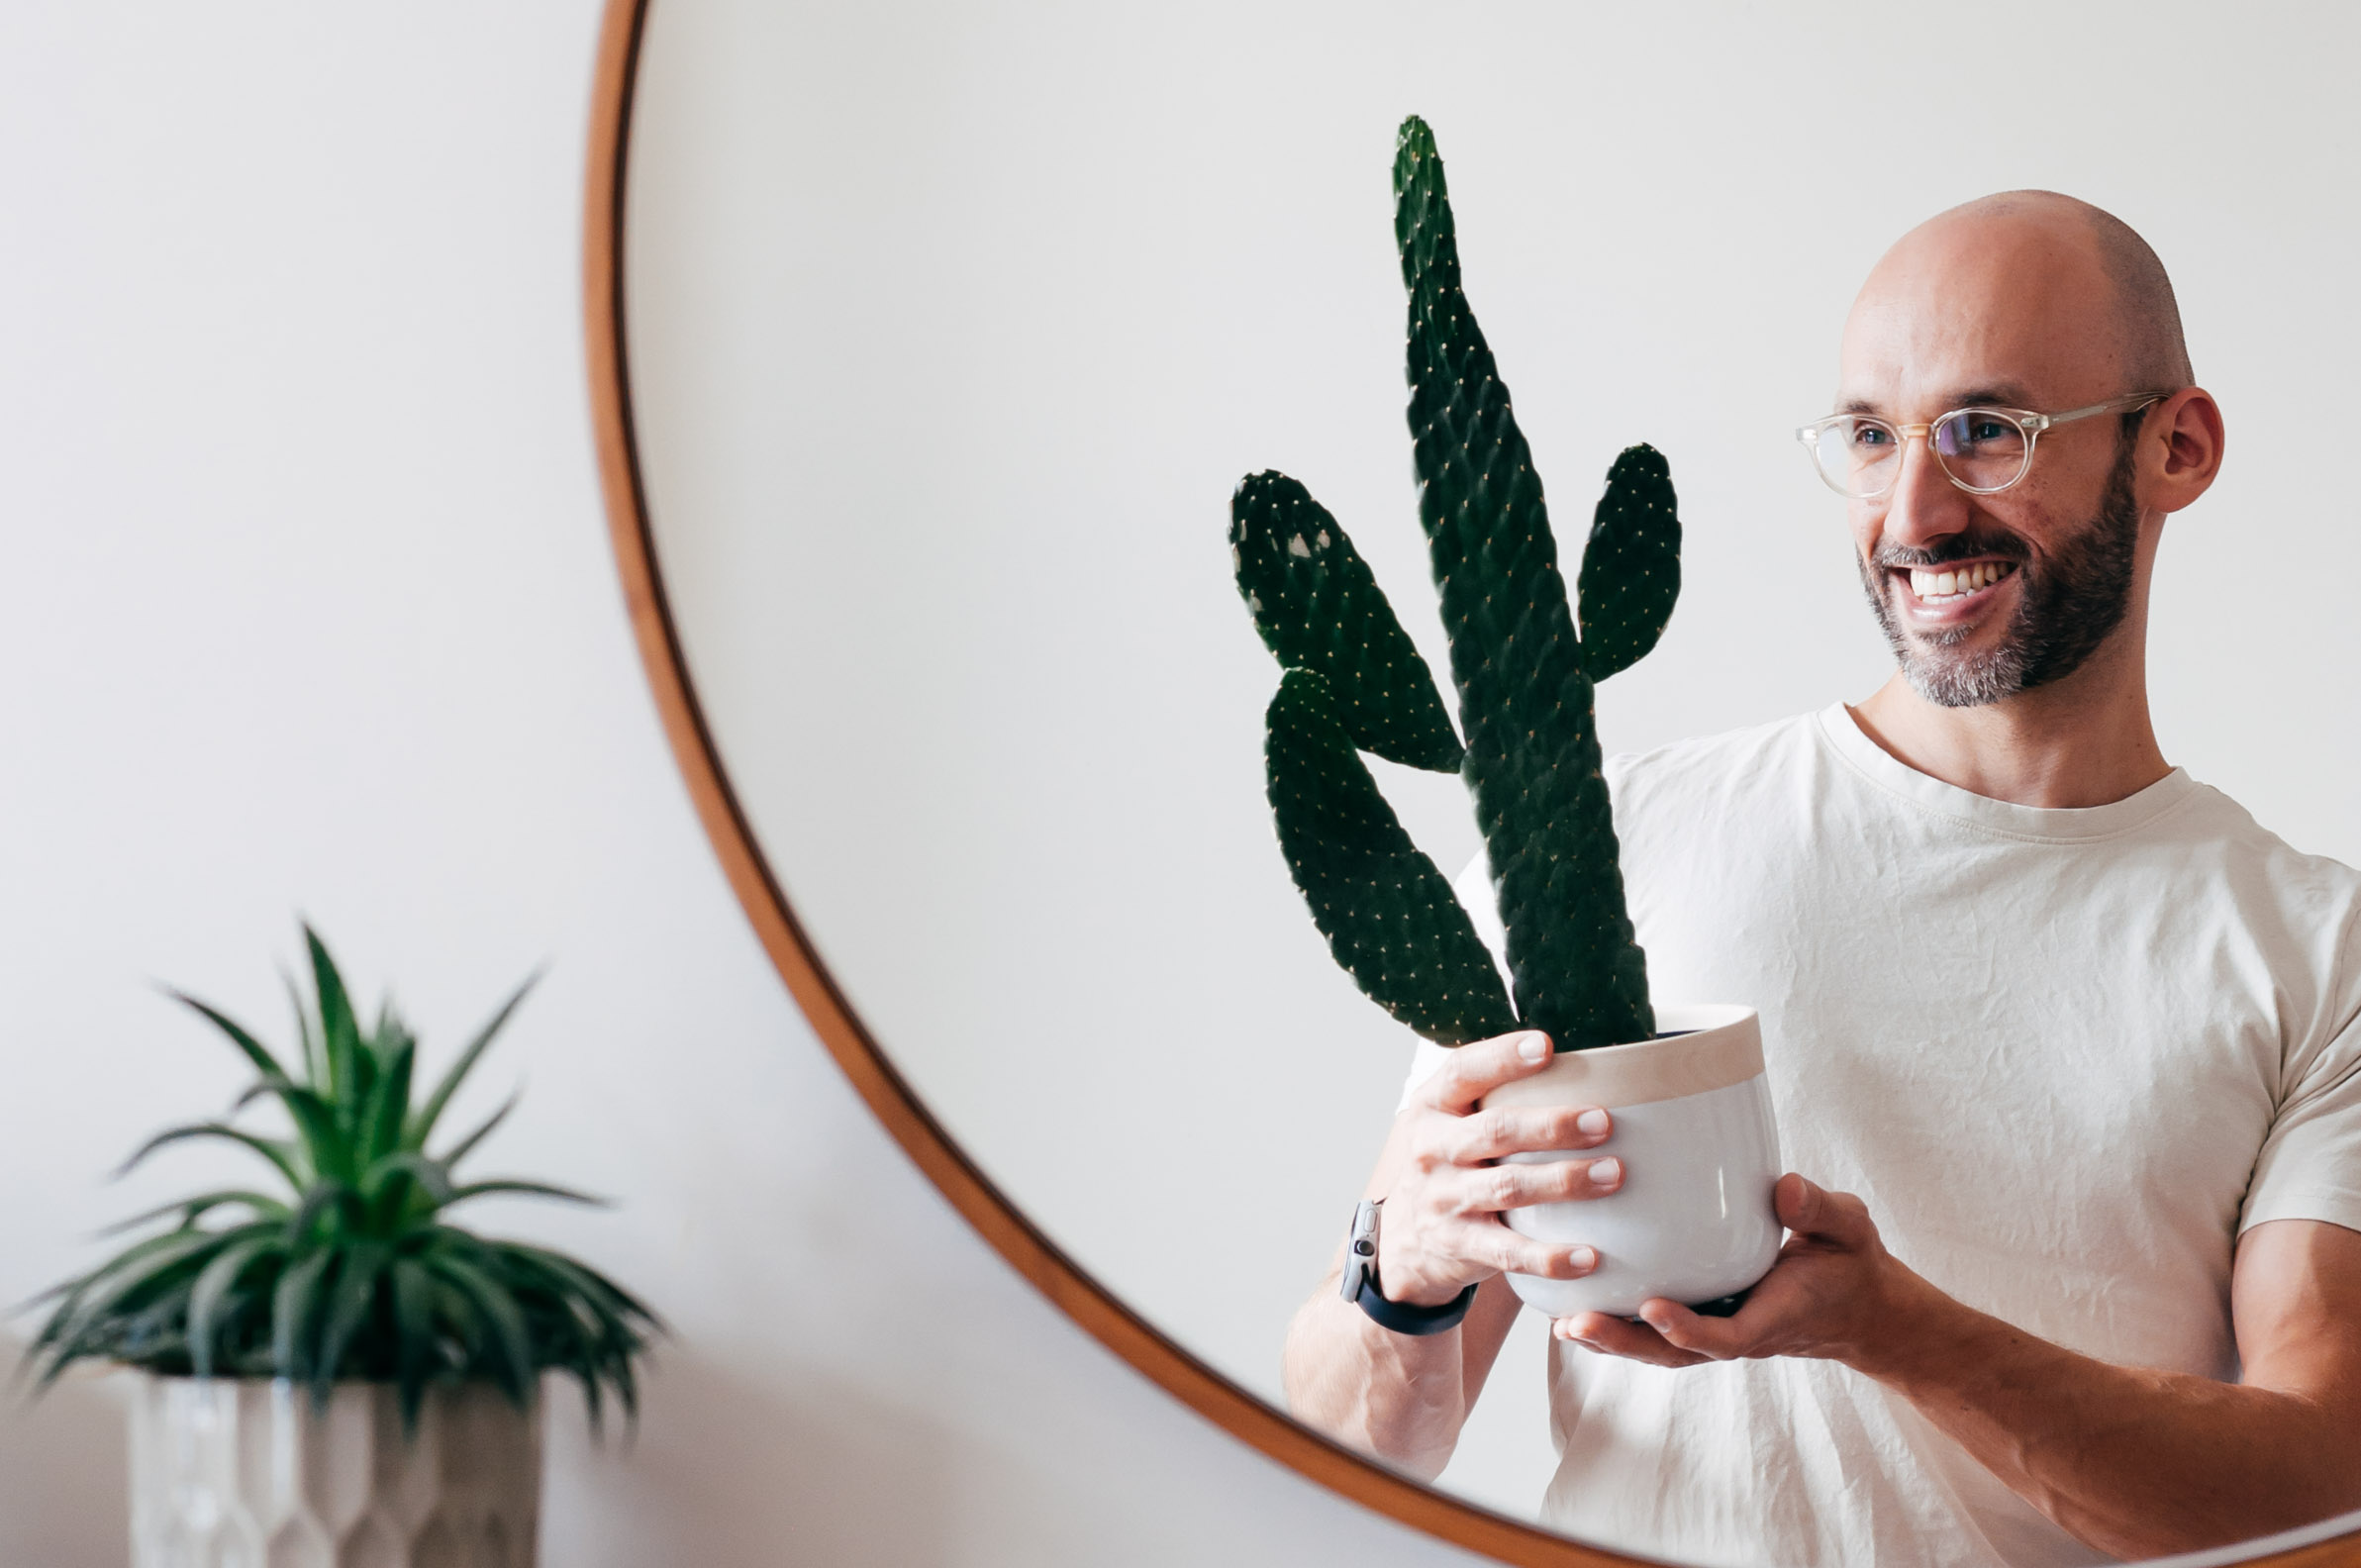 Juan Sandiego holding a potted cactus